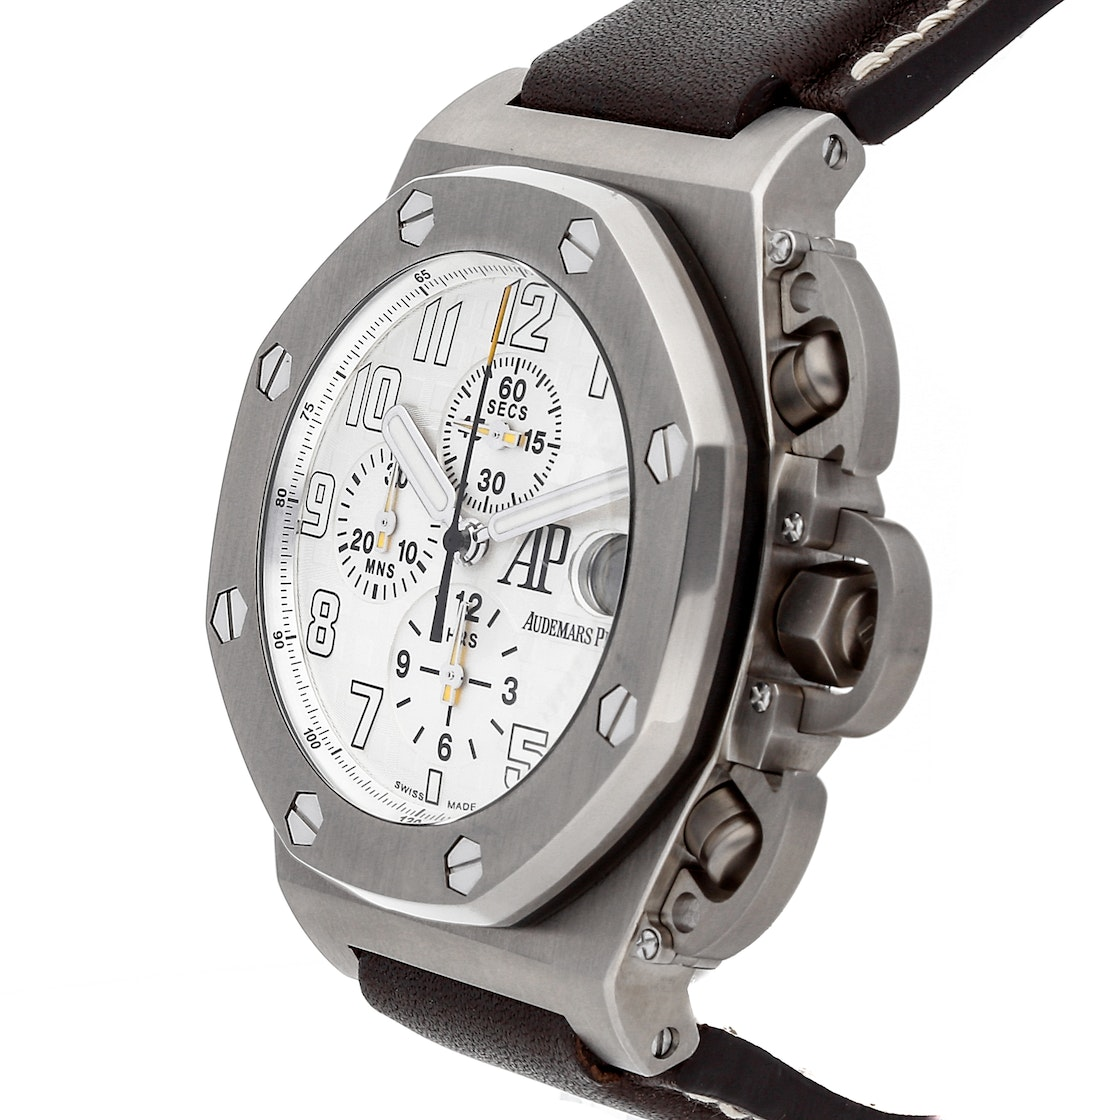 Audemars Piguet Royal Oak Offshore T3 Limited Edition 25863TI.OO.A080CU.01